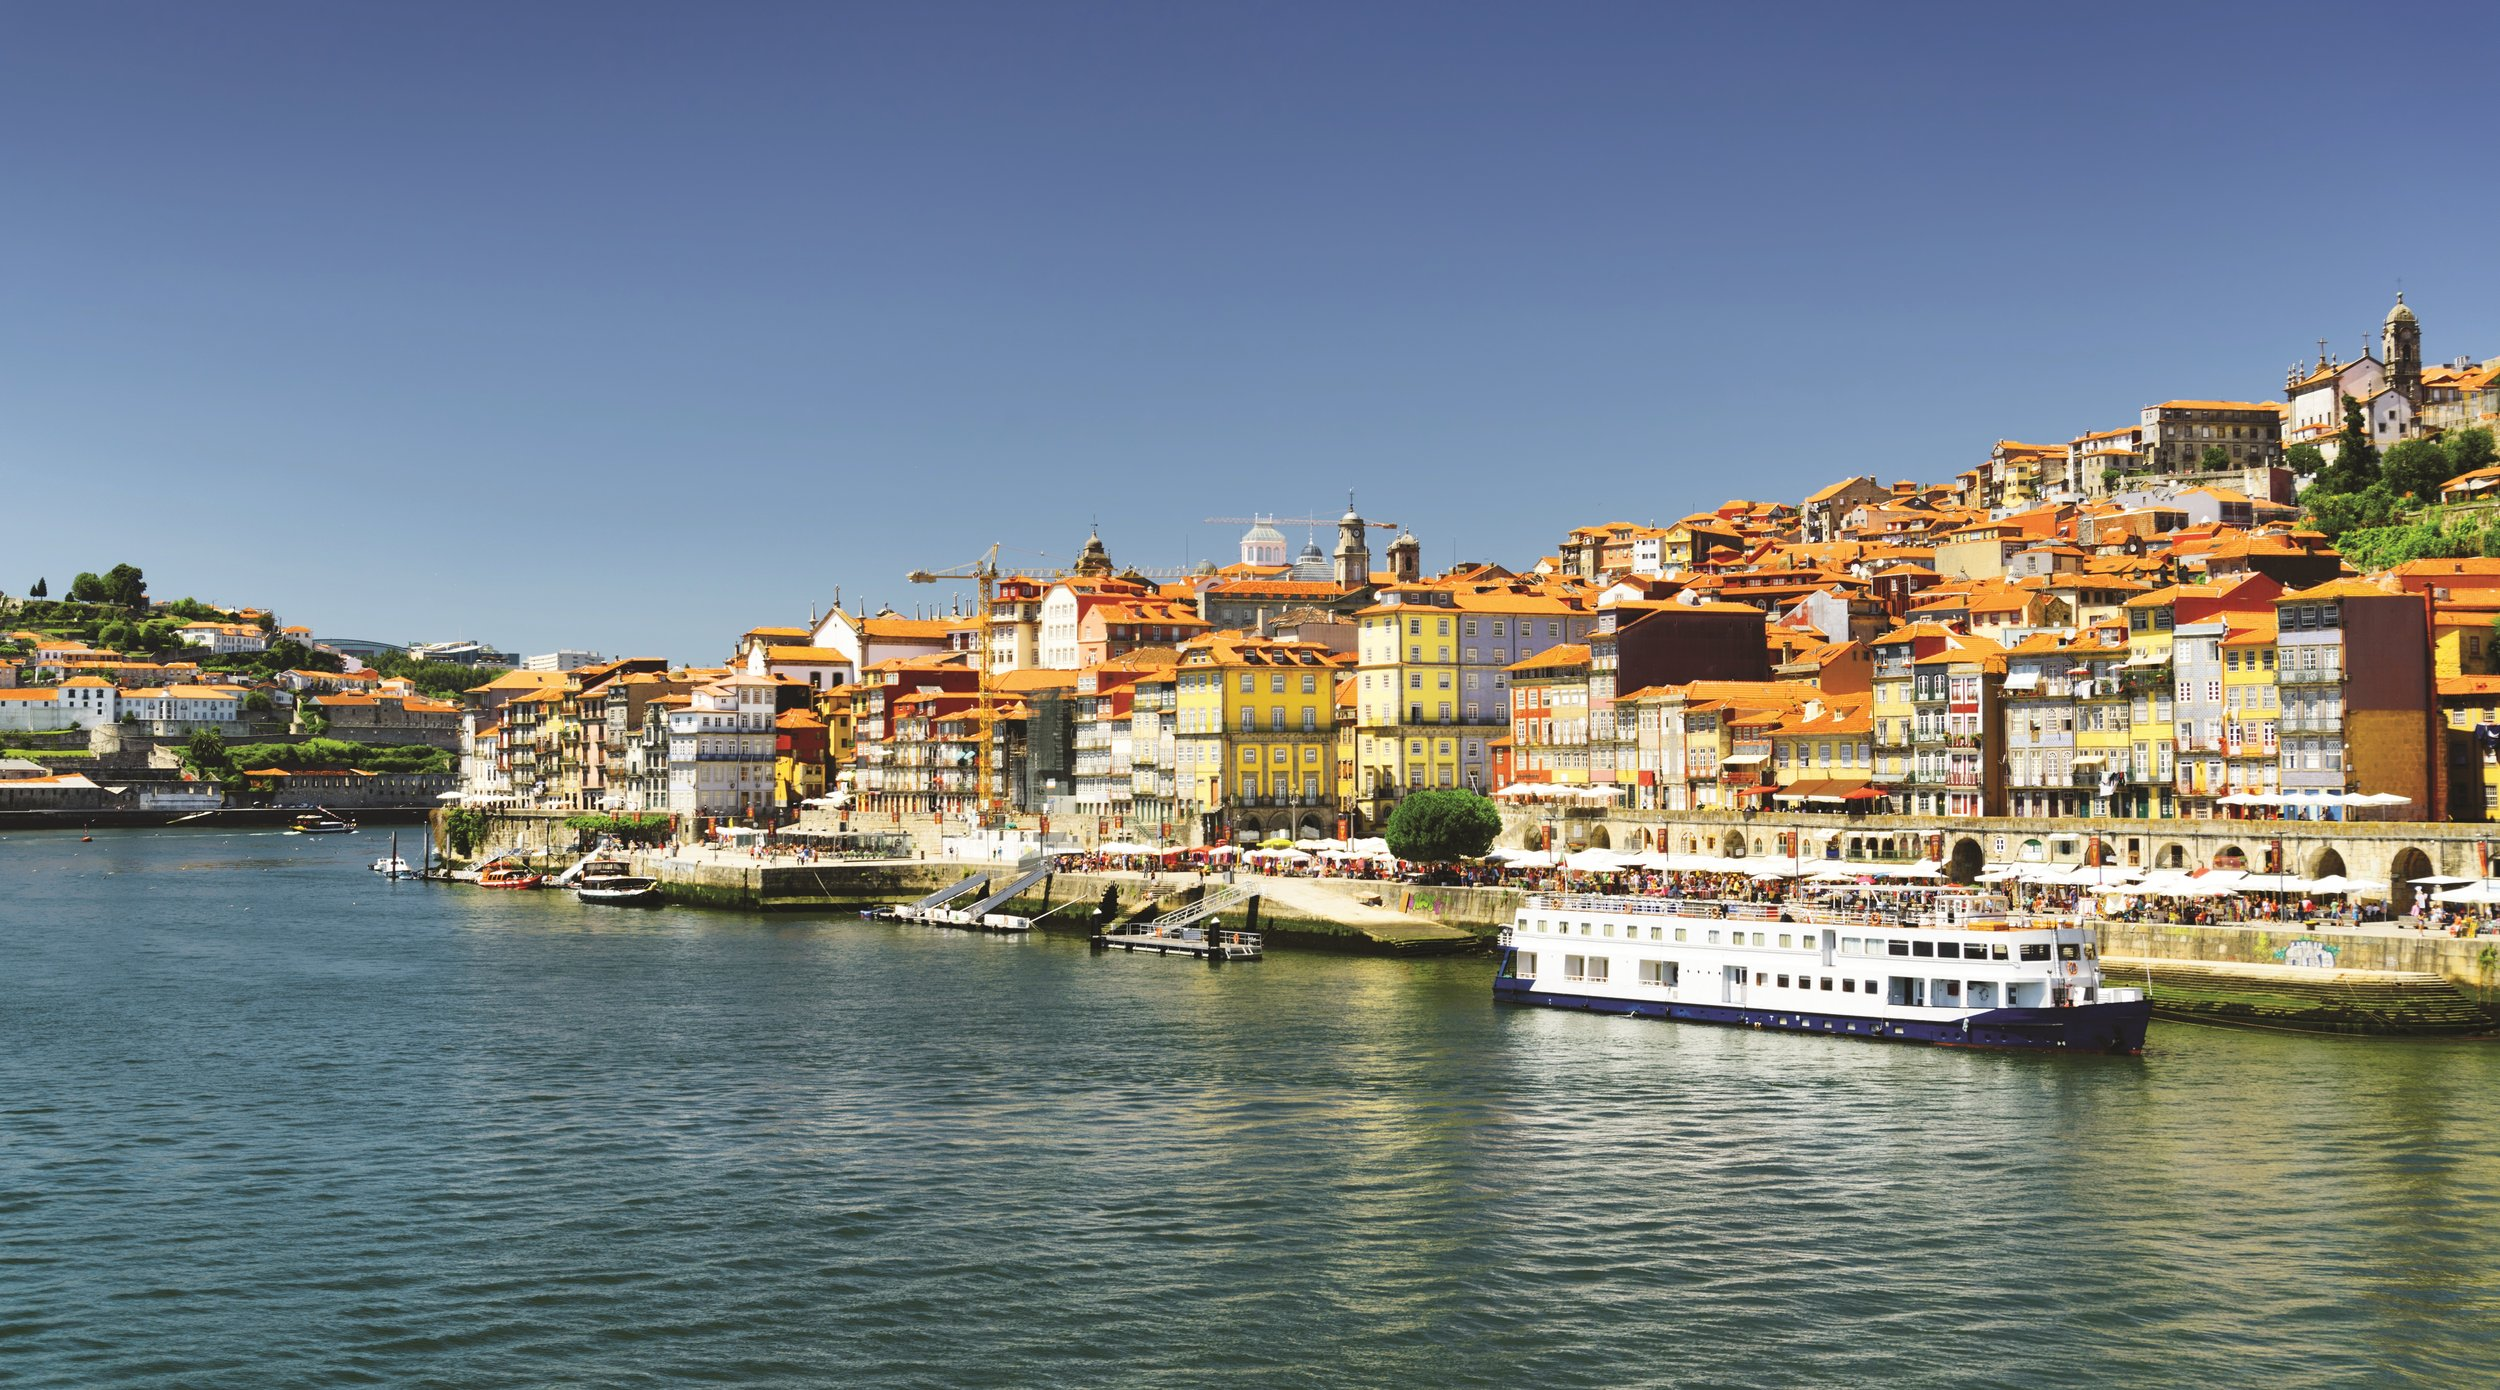 Porto & Lisbon - From Europe's vintage port to the city of sea and explorers.From £1,575